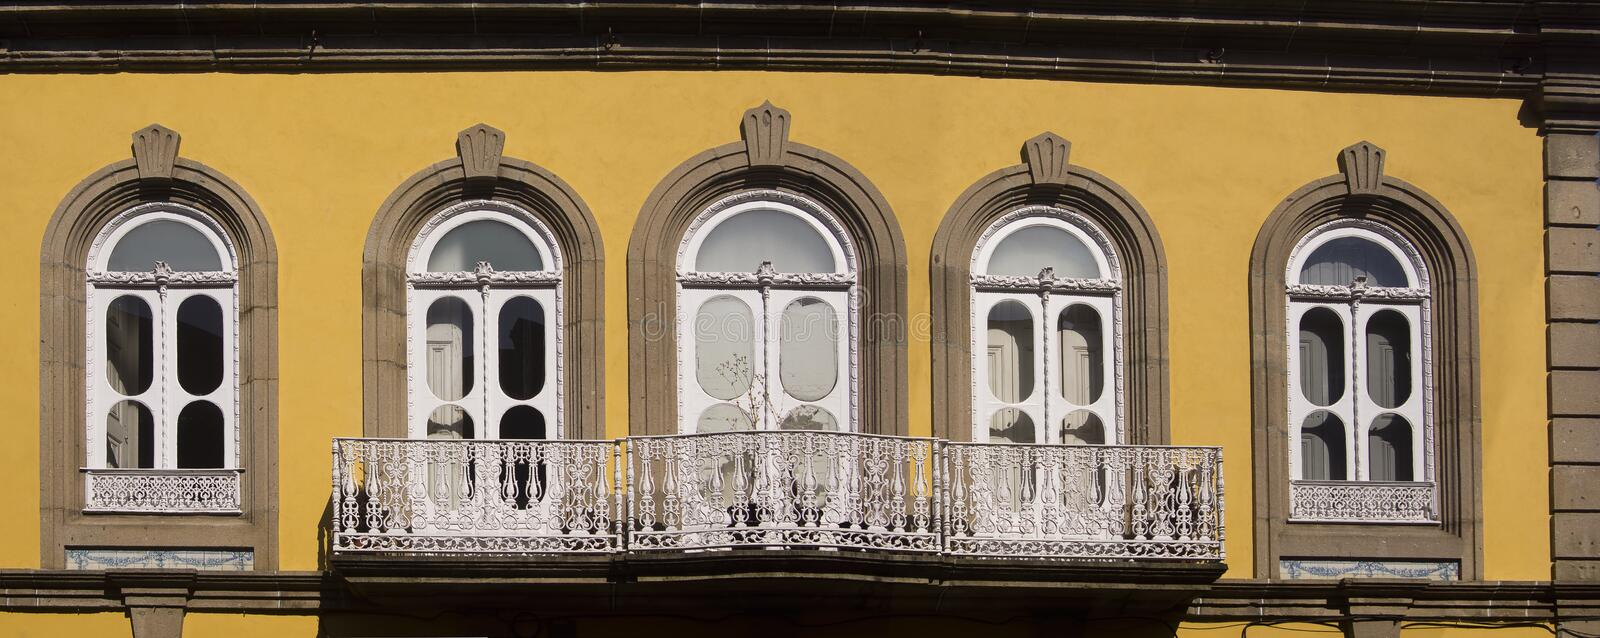 Window Guimaraes Portugal. Window and yellow facade in Guimaraes Portugal royalty free stock photography